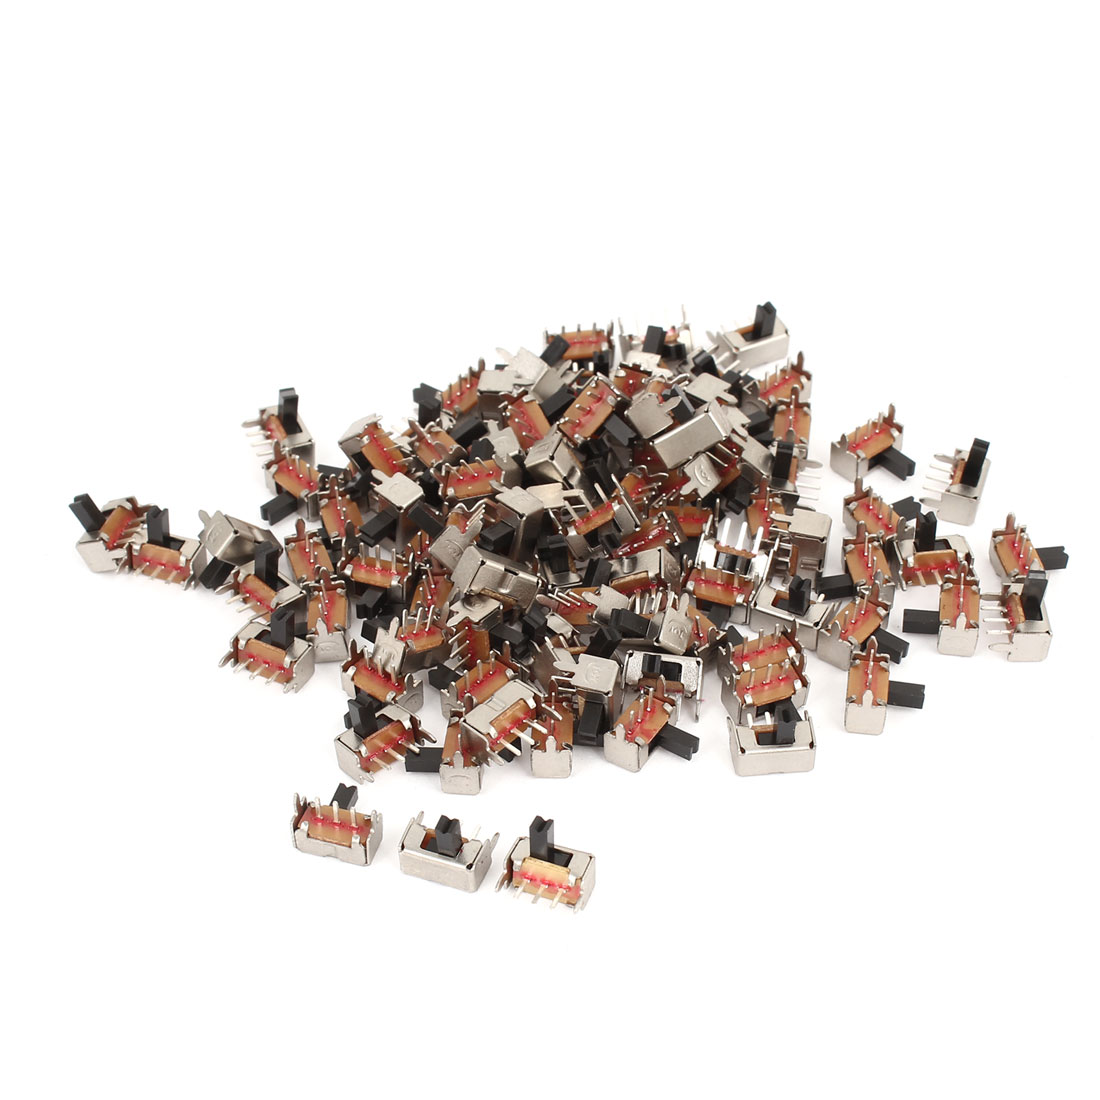 100 Pcs AC 250V 3A 3Pin 2Position PCB Mount SPDT Right Angle Miniature Slide Switch